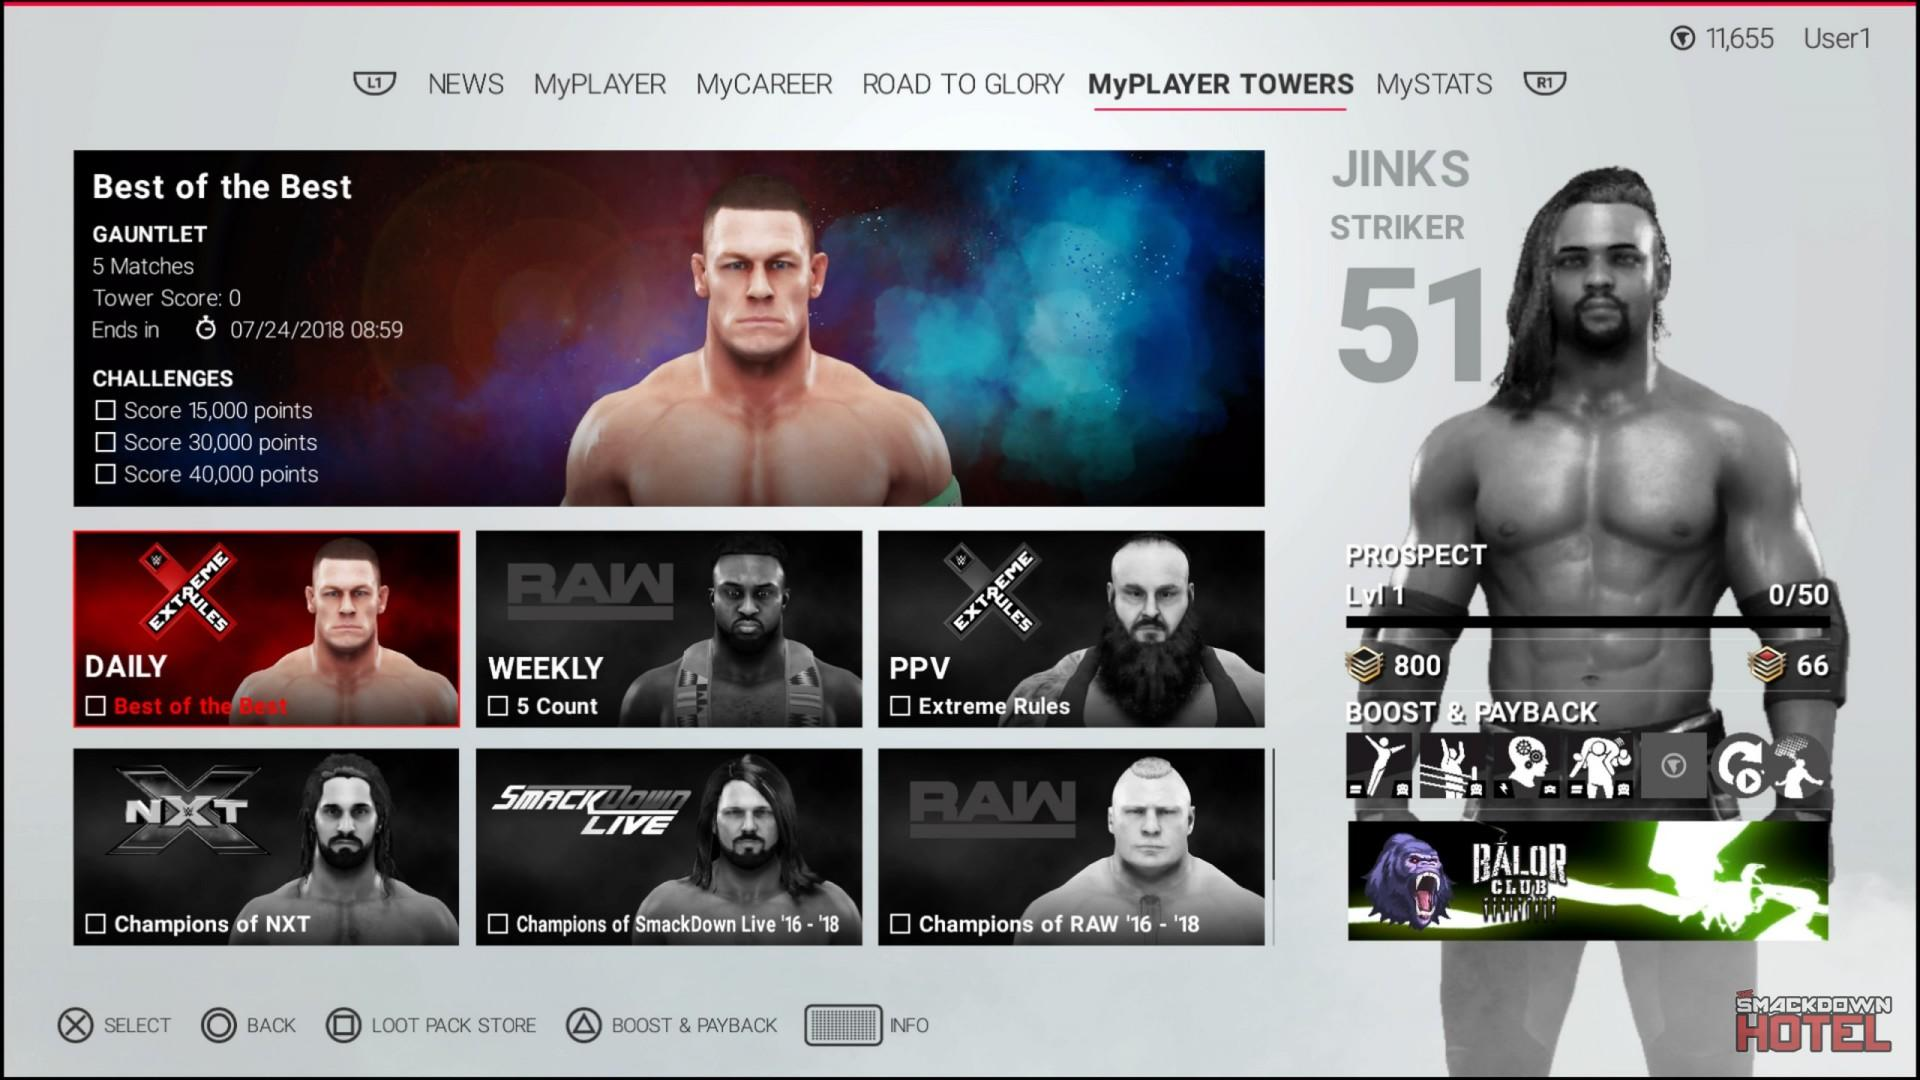 WWE 2K19 Towers Mode 5 MyPLAYER